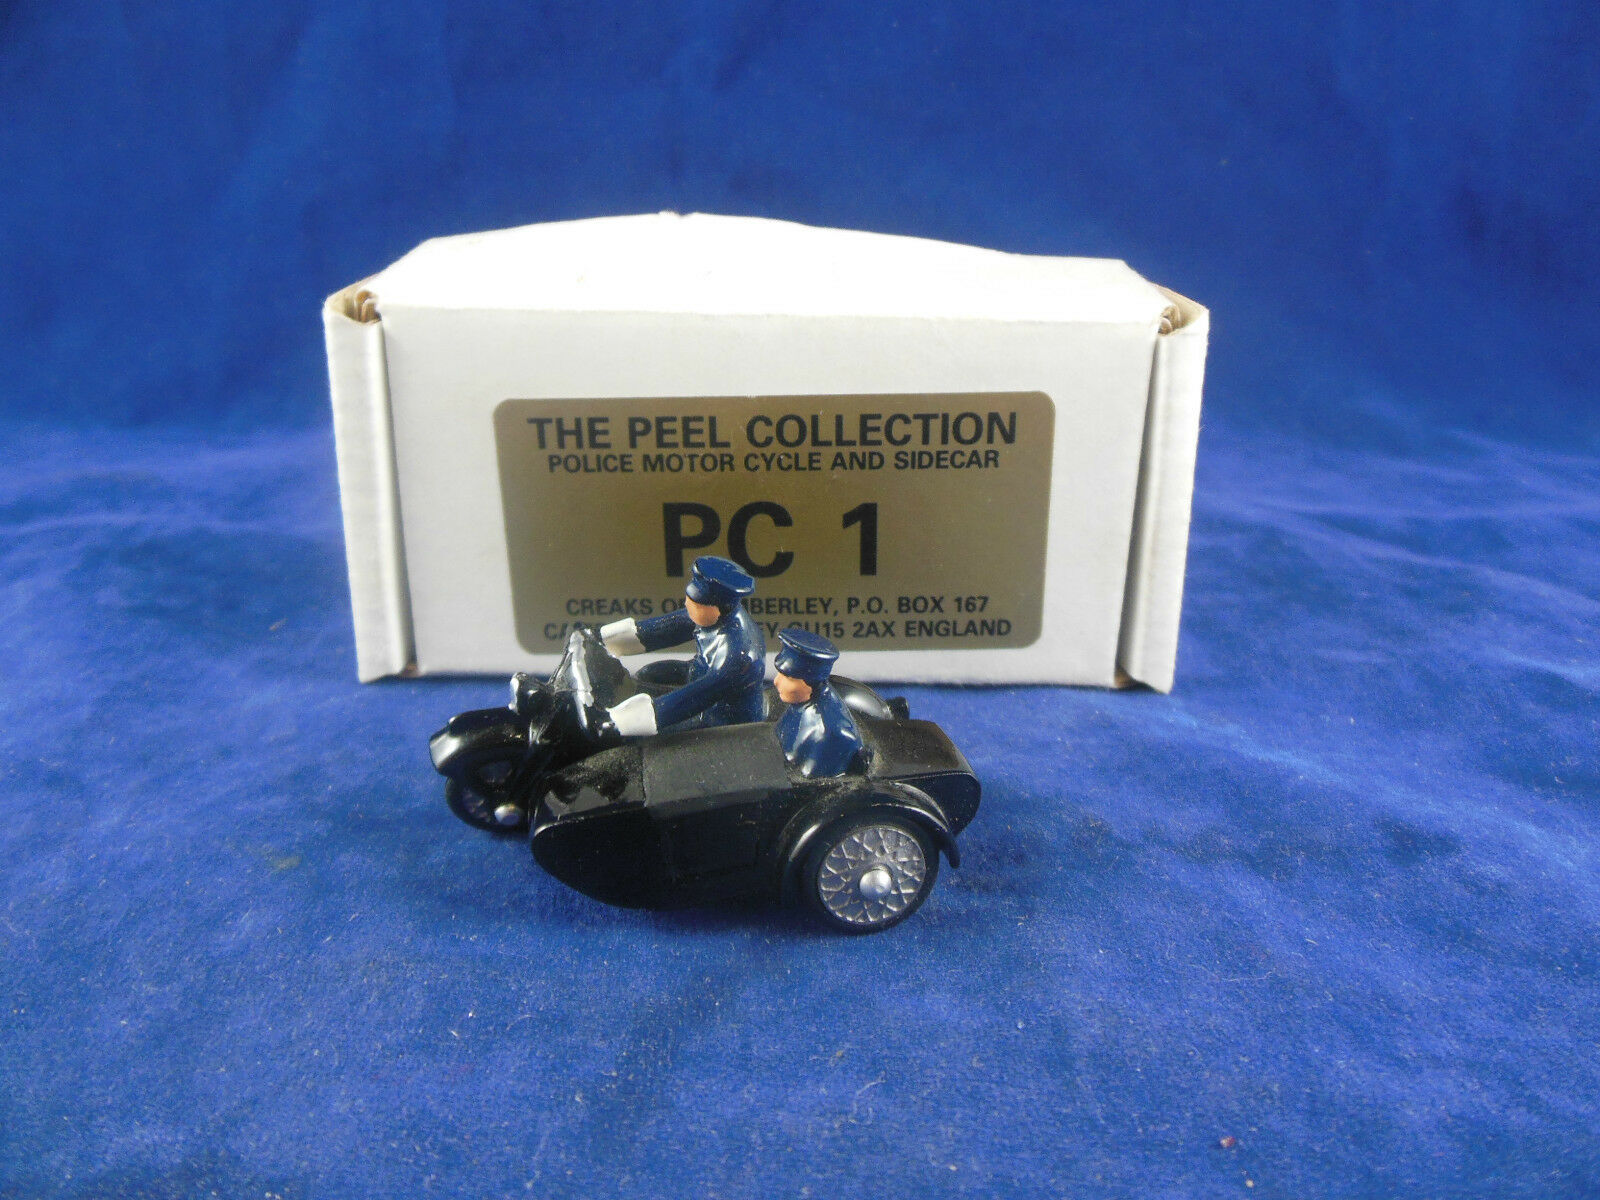 Very Rare Creaks of Camberley Peel Collection Collection Collection PC1 Police Motor Cycle & Sidecar e15d20